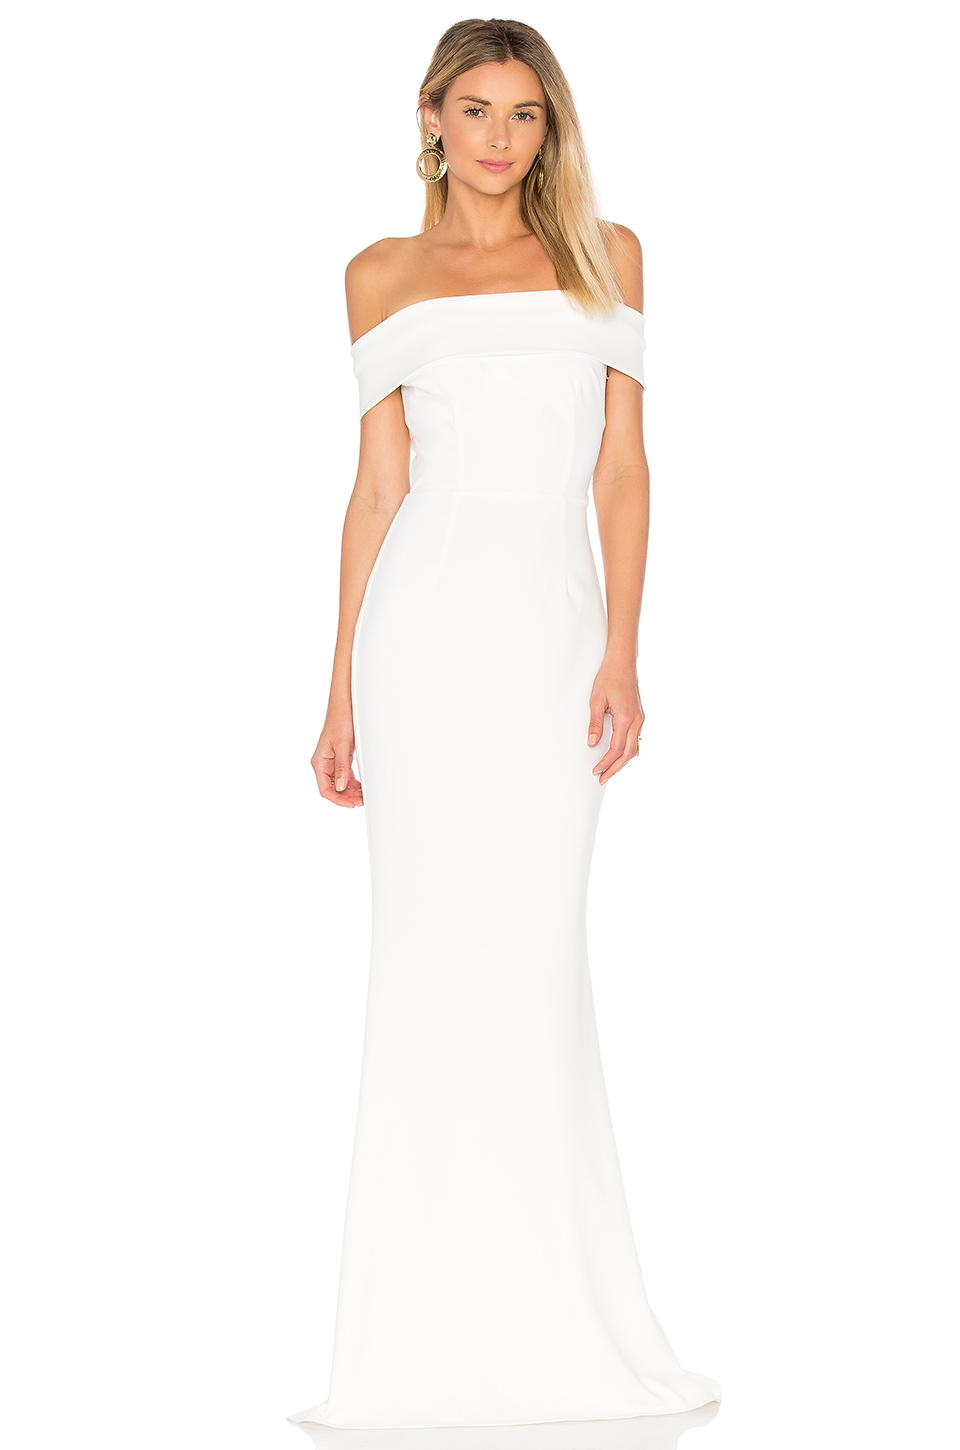 LEGACY GOWN BY KATIE MAY, $295 AT REVOLVE.COM